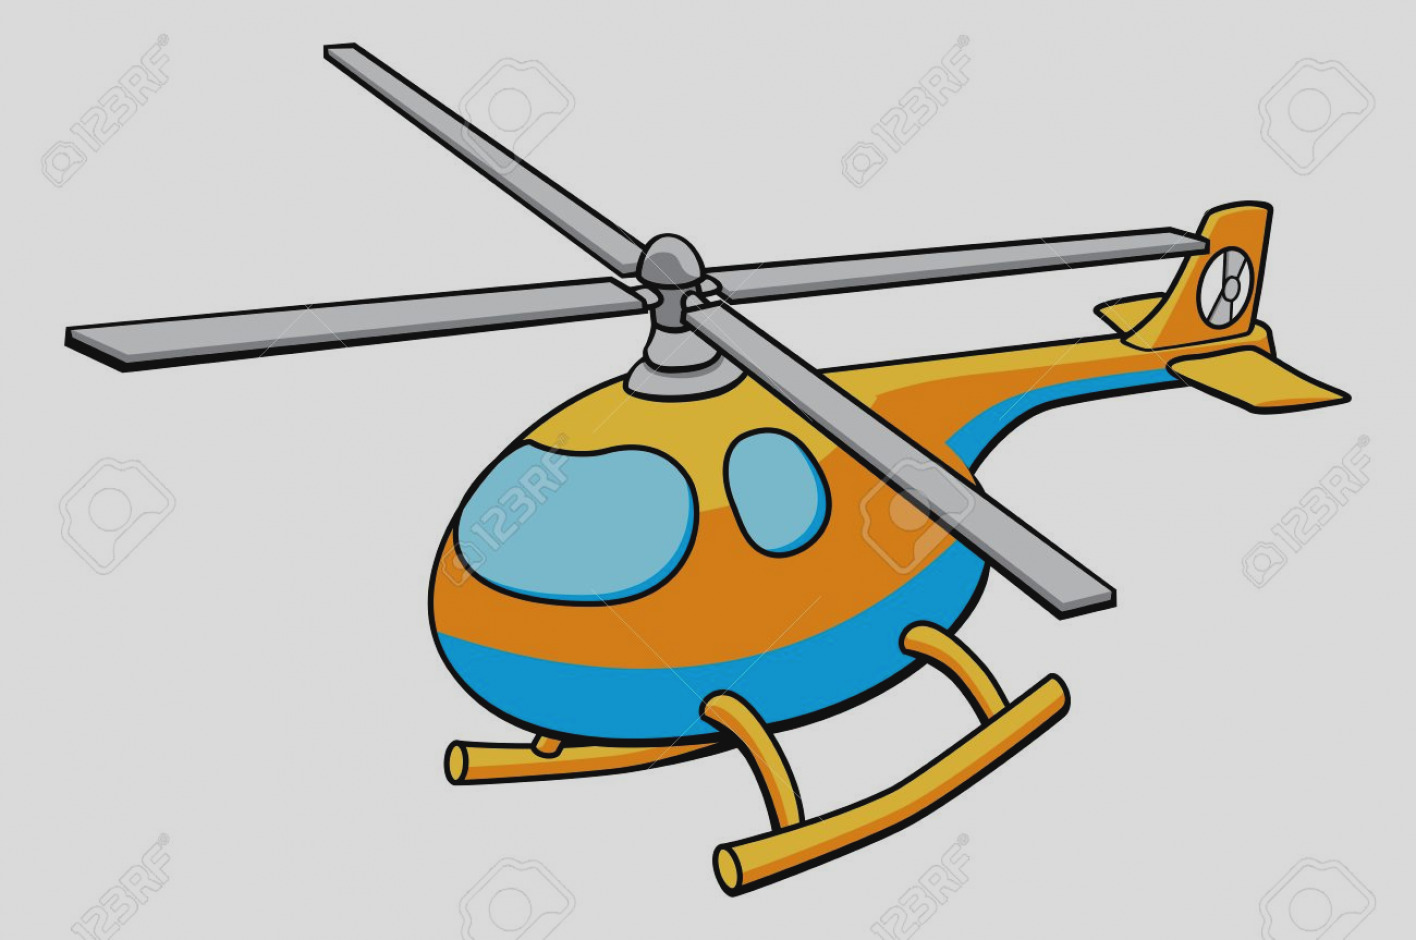 1416x940 Amazing Of Helicopter Clip Art 26 Clipart Panda Free Images